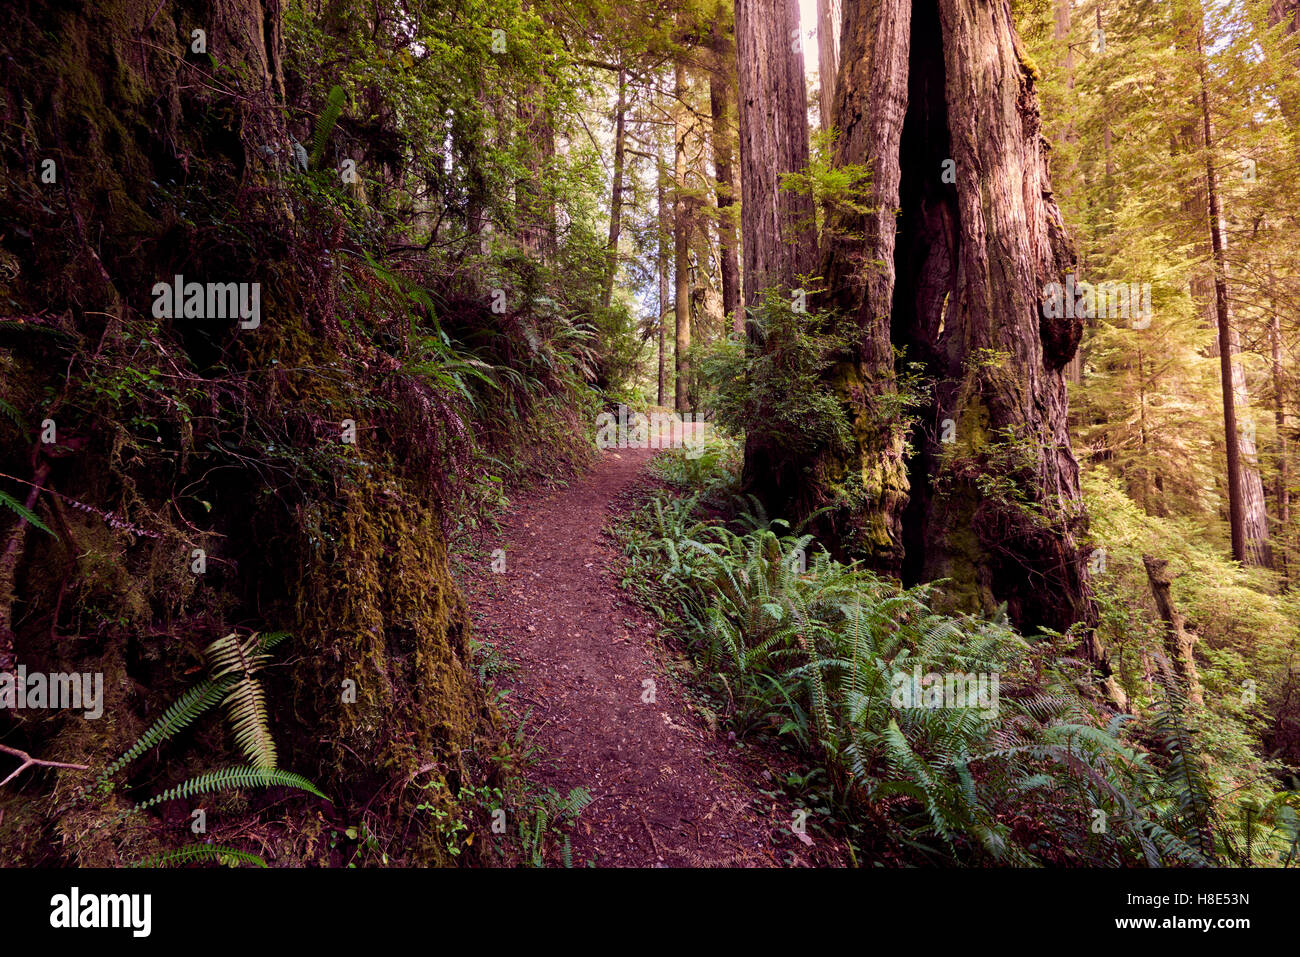 Hiking in Redwood National Park in California, along Miner's Ridge trail - Stock Image